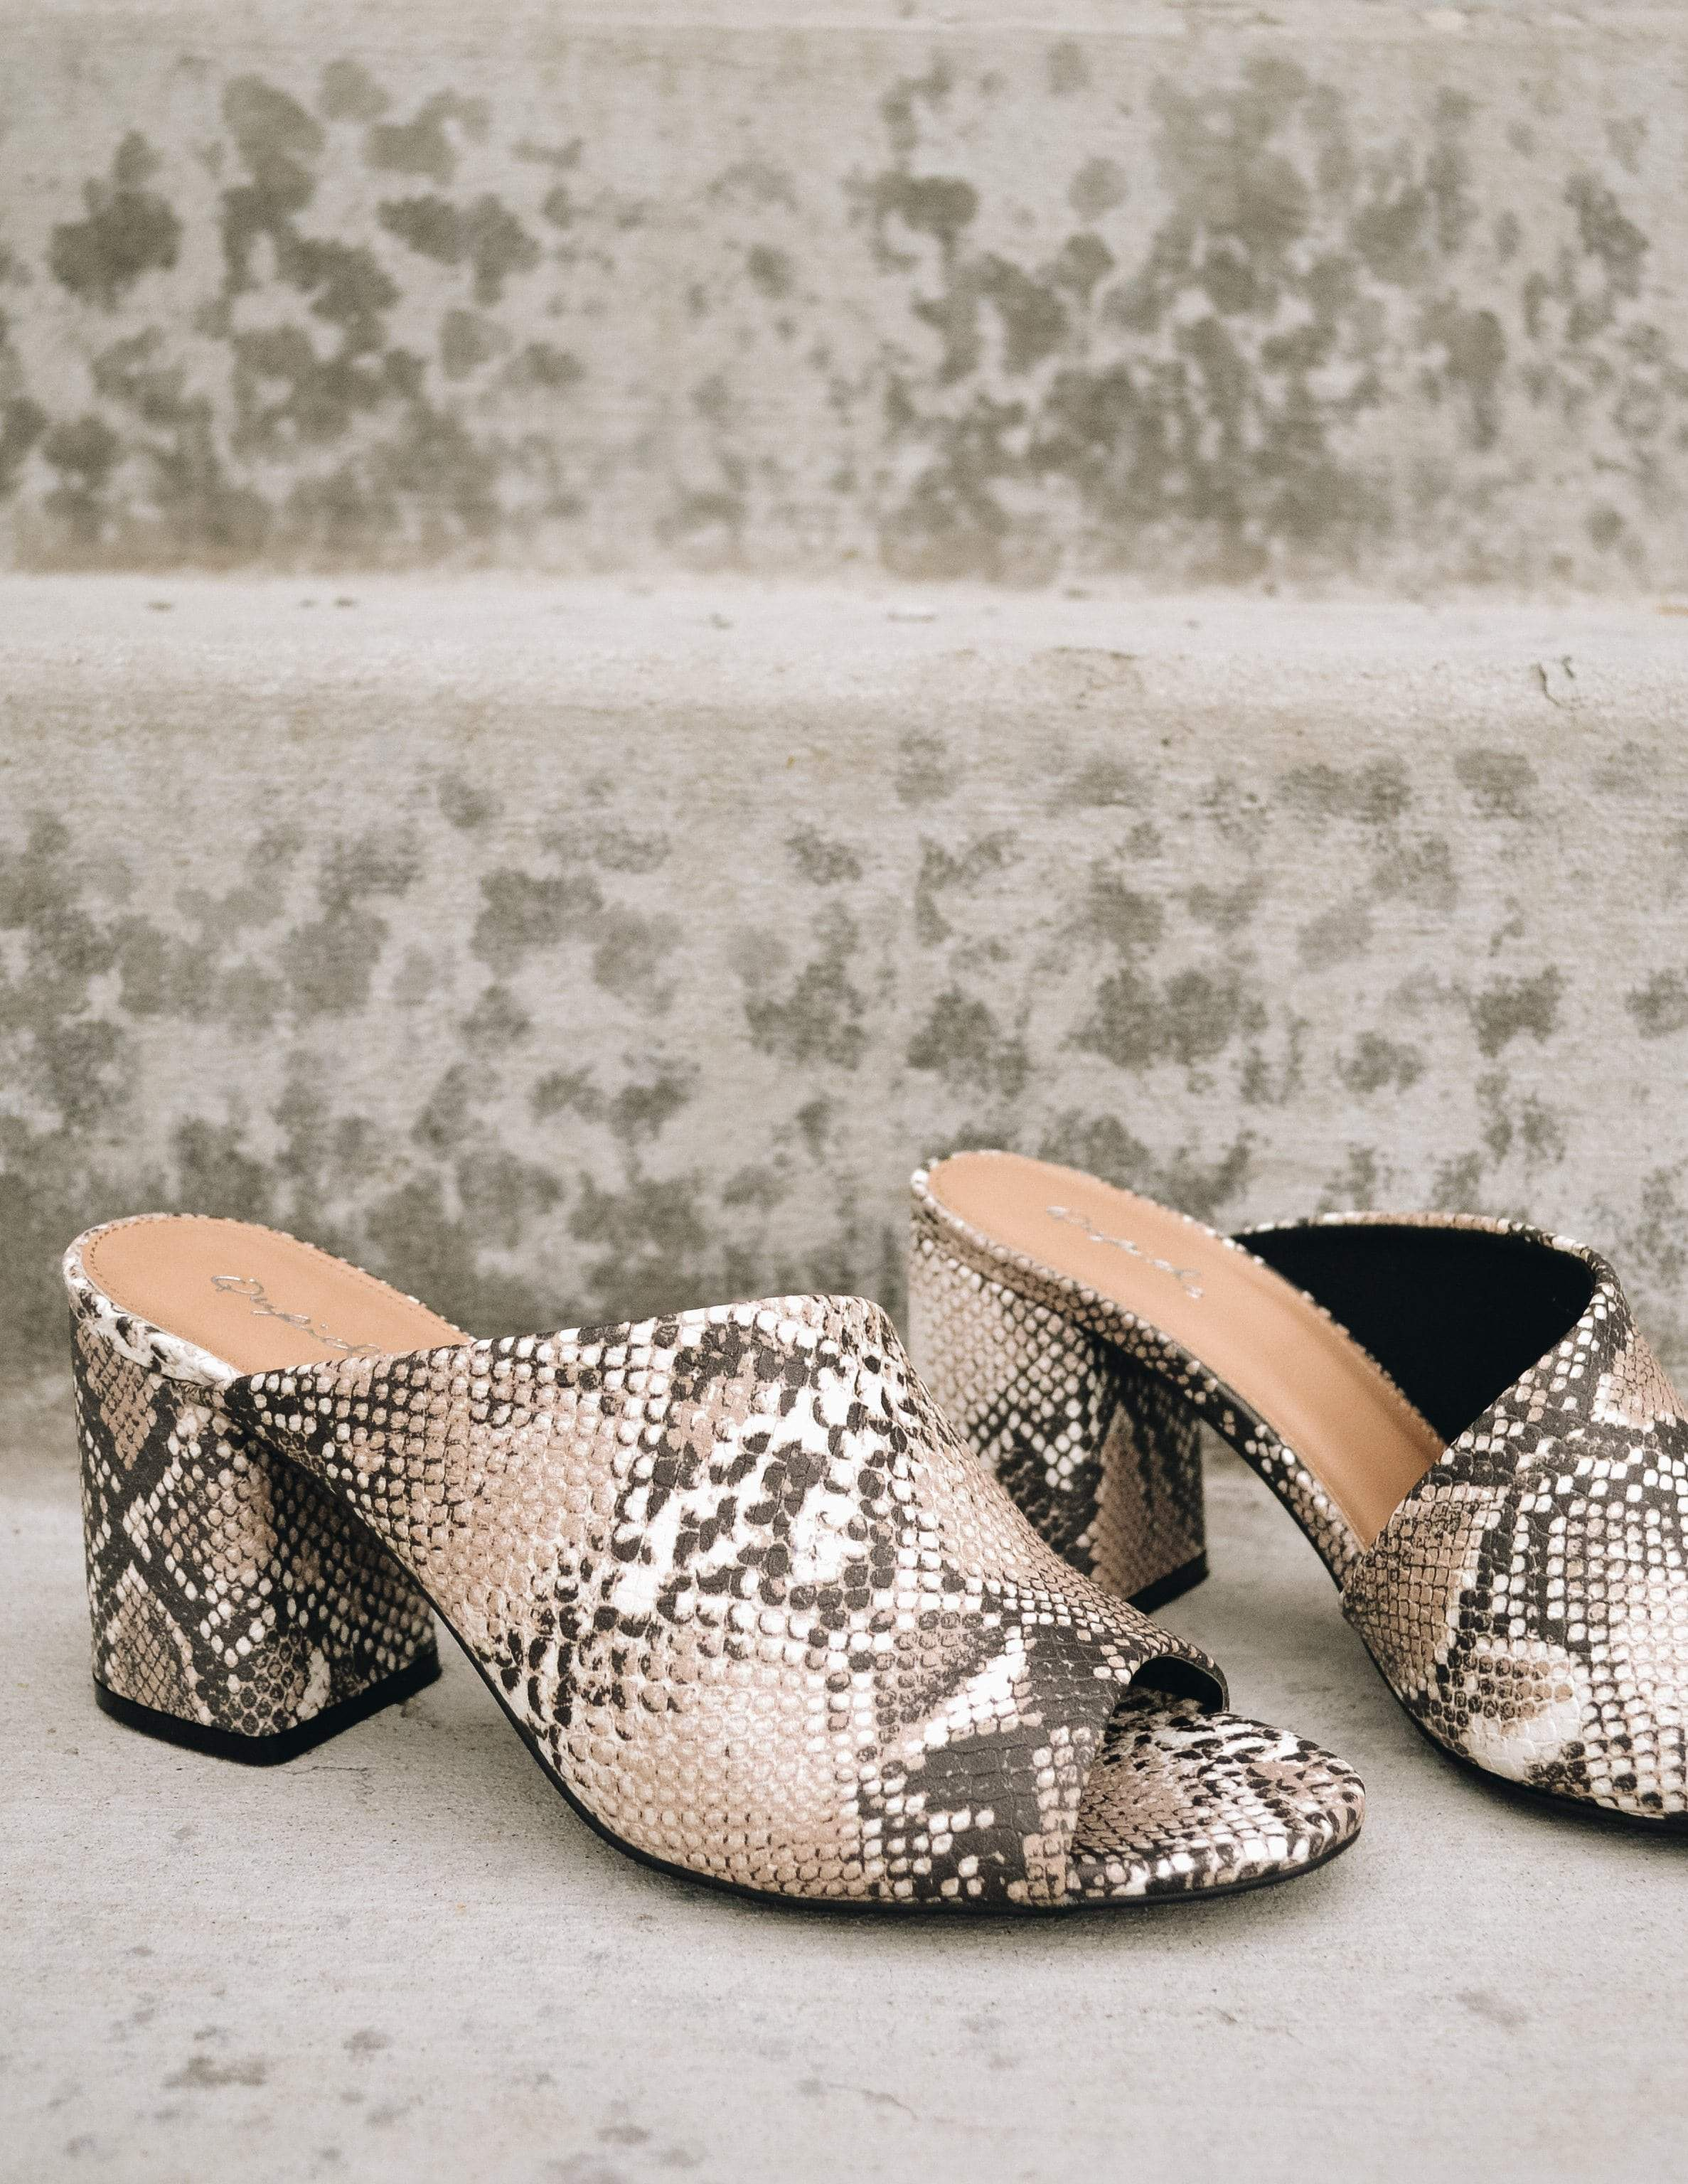 Python print adeline heel with open toe and open back on steps